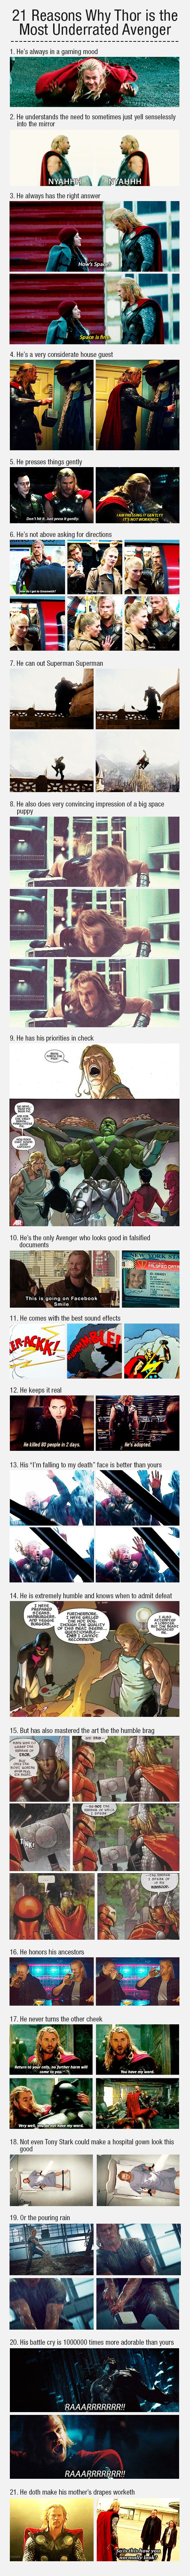 21 Reasons Why Thor is the Most Underrated Avenger